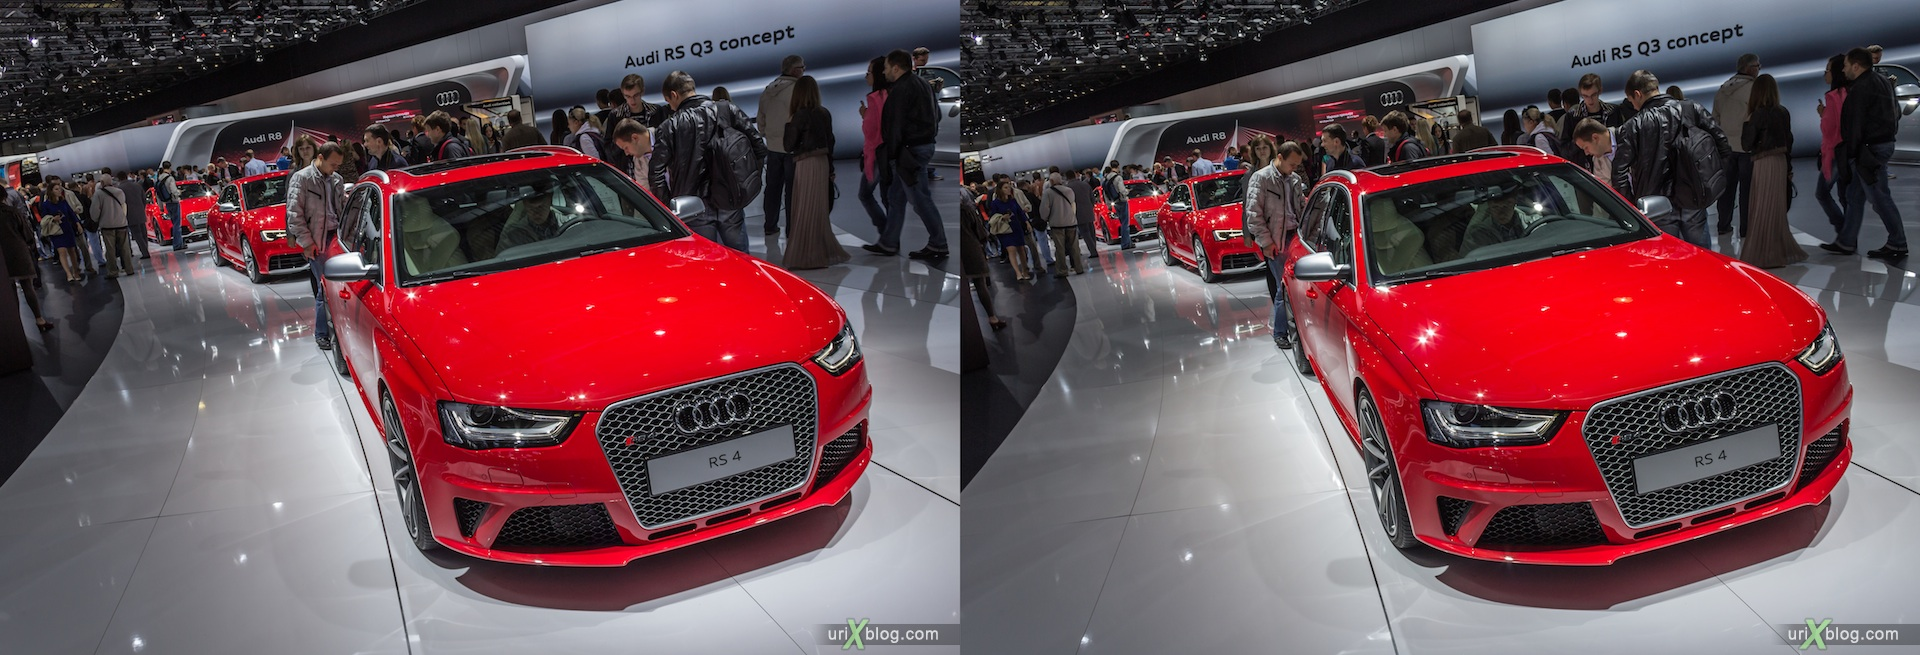 2012, Audi RS 4, Moscow International Automobile Salon, auto show, 3D, stereo pair, cross-eyed, crossview